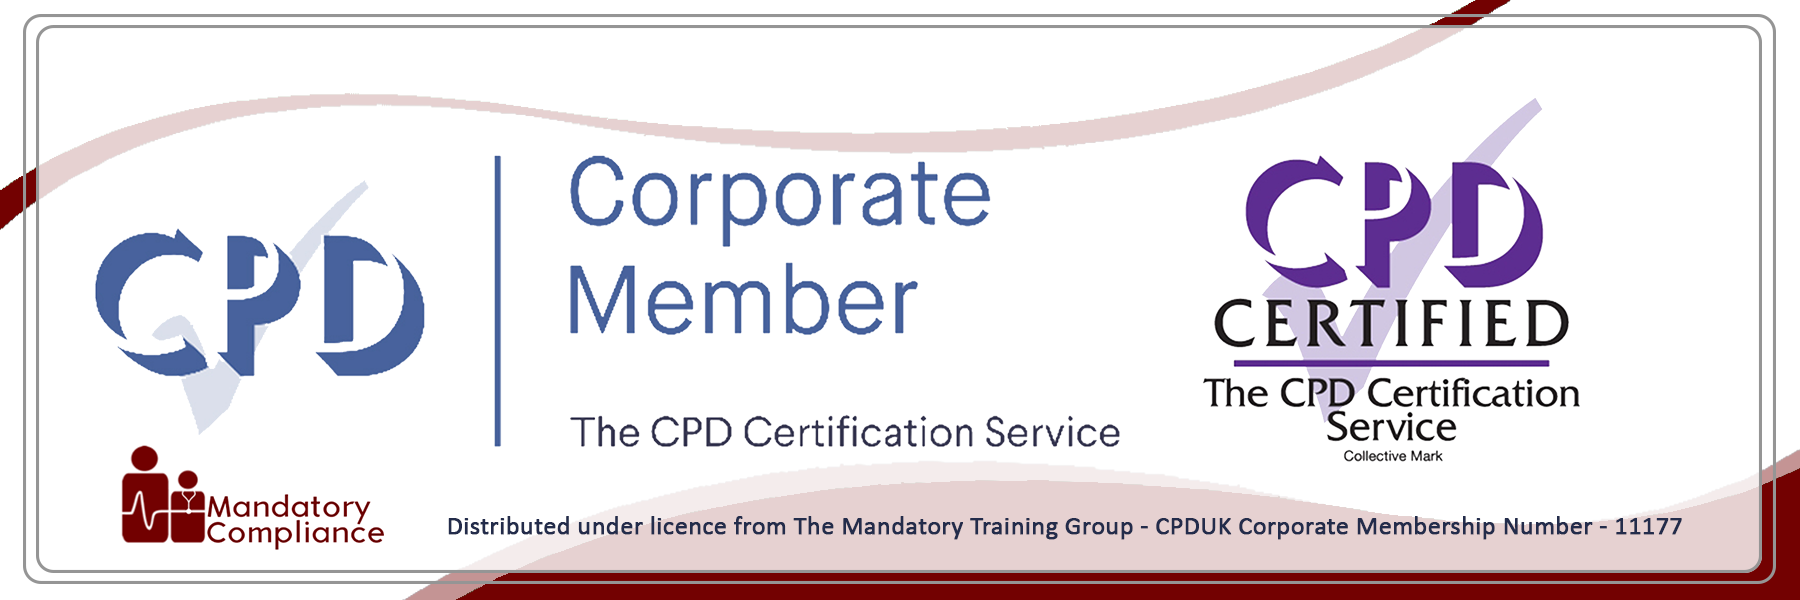 Verification of Death by Nurses - Online Training Course - CPD Accredited - Mandatory Compliance UK -